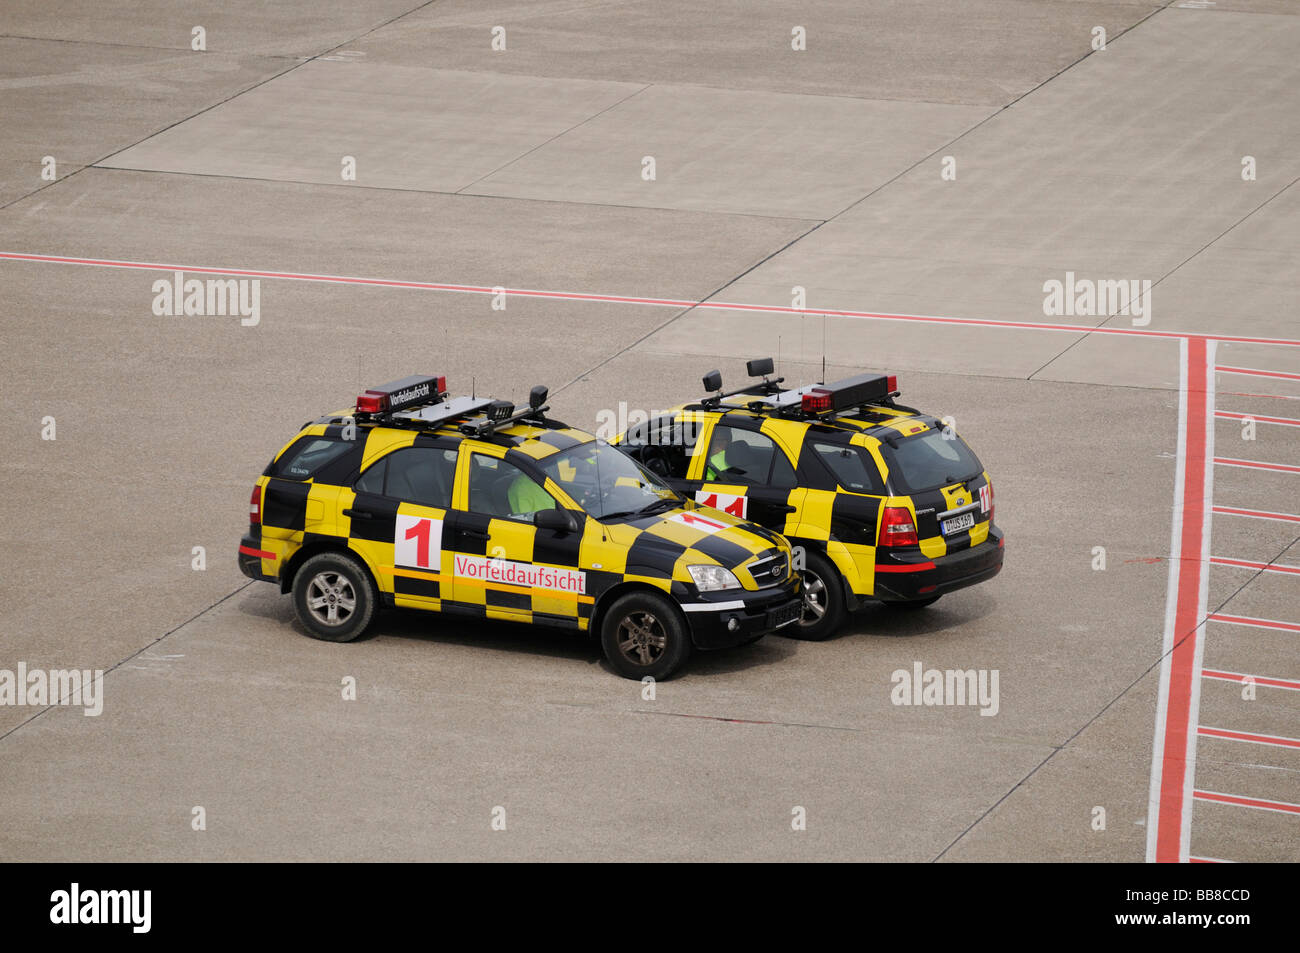 Two yellow and black chequered vehicles on a runway, follow-me cars, Duesseldorf International Airport, North Rhine - Stock Image